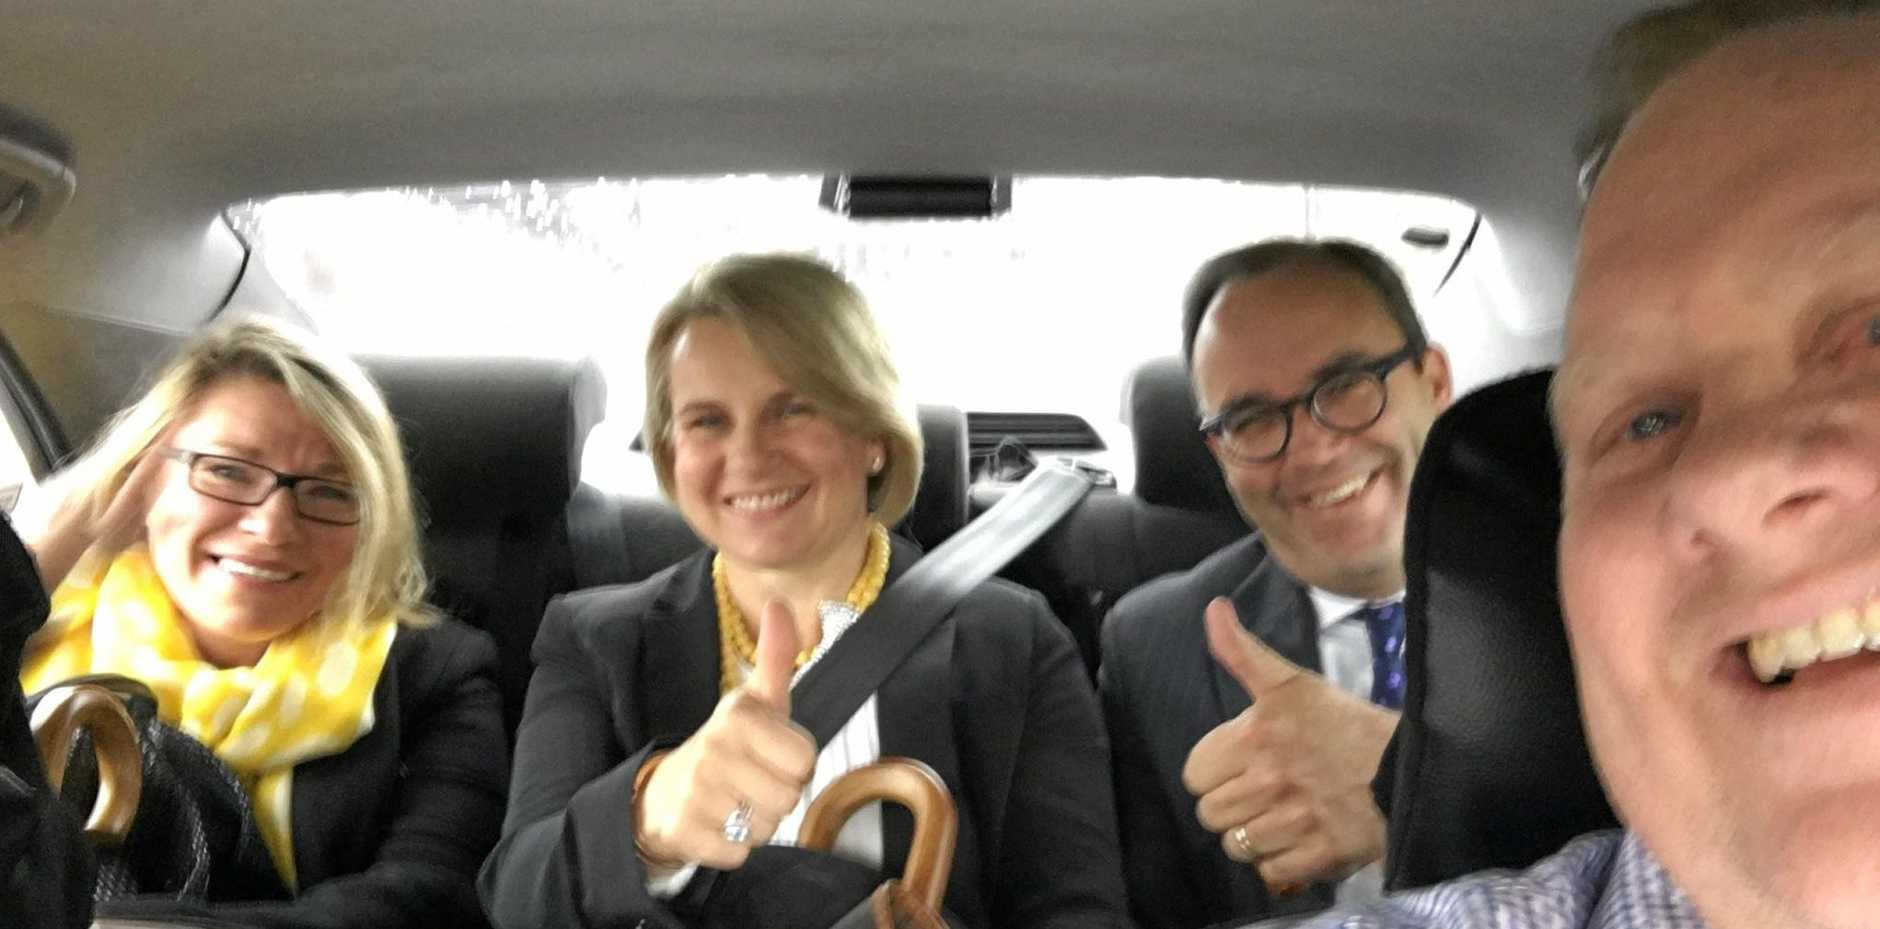 Olympian Libby Trickett, Nicole Morrison, Simon Morrison and Bevan Slattery in the taxi from the High Court to the Canberra Airport after the court handed down the decision to reinstate Gerard Baden-Clay's murder conviction in relation to the death of his wife, Allison.